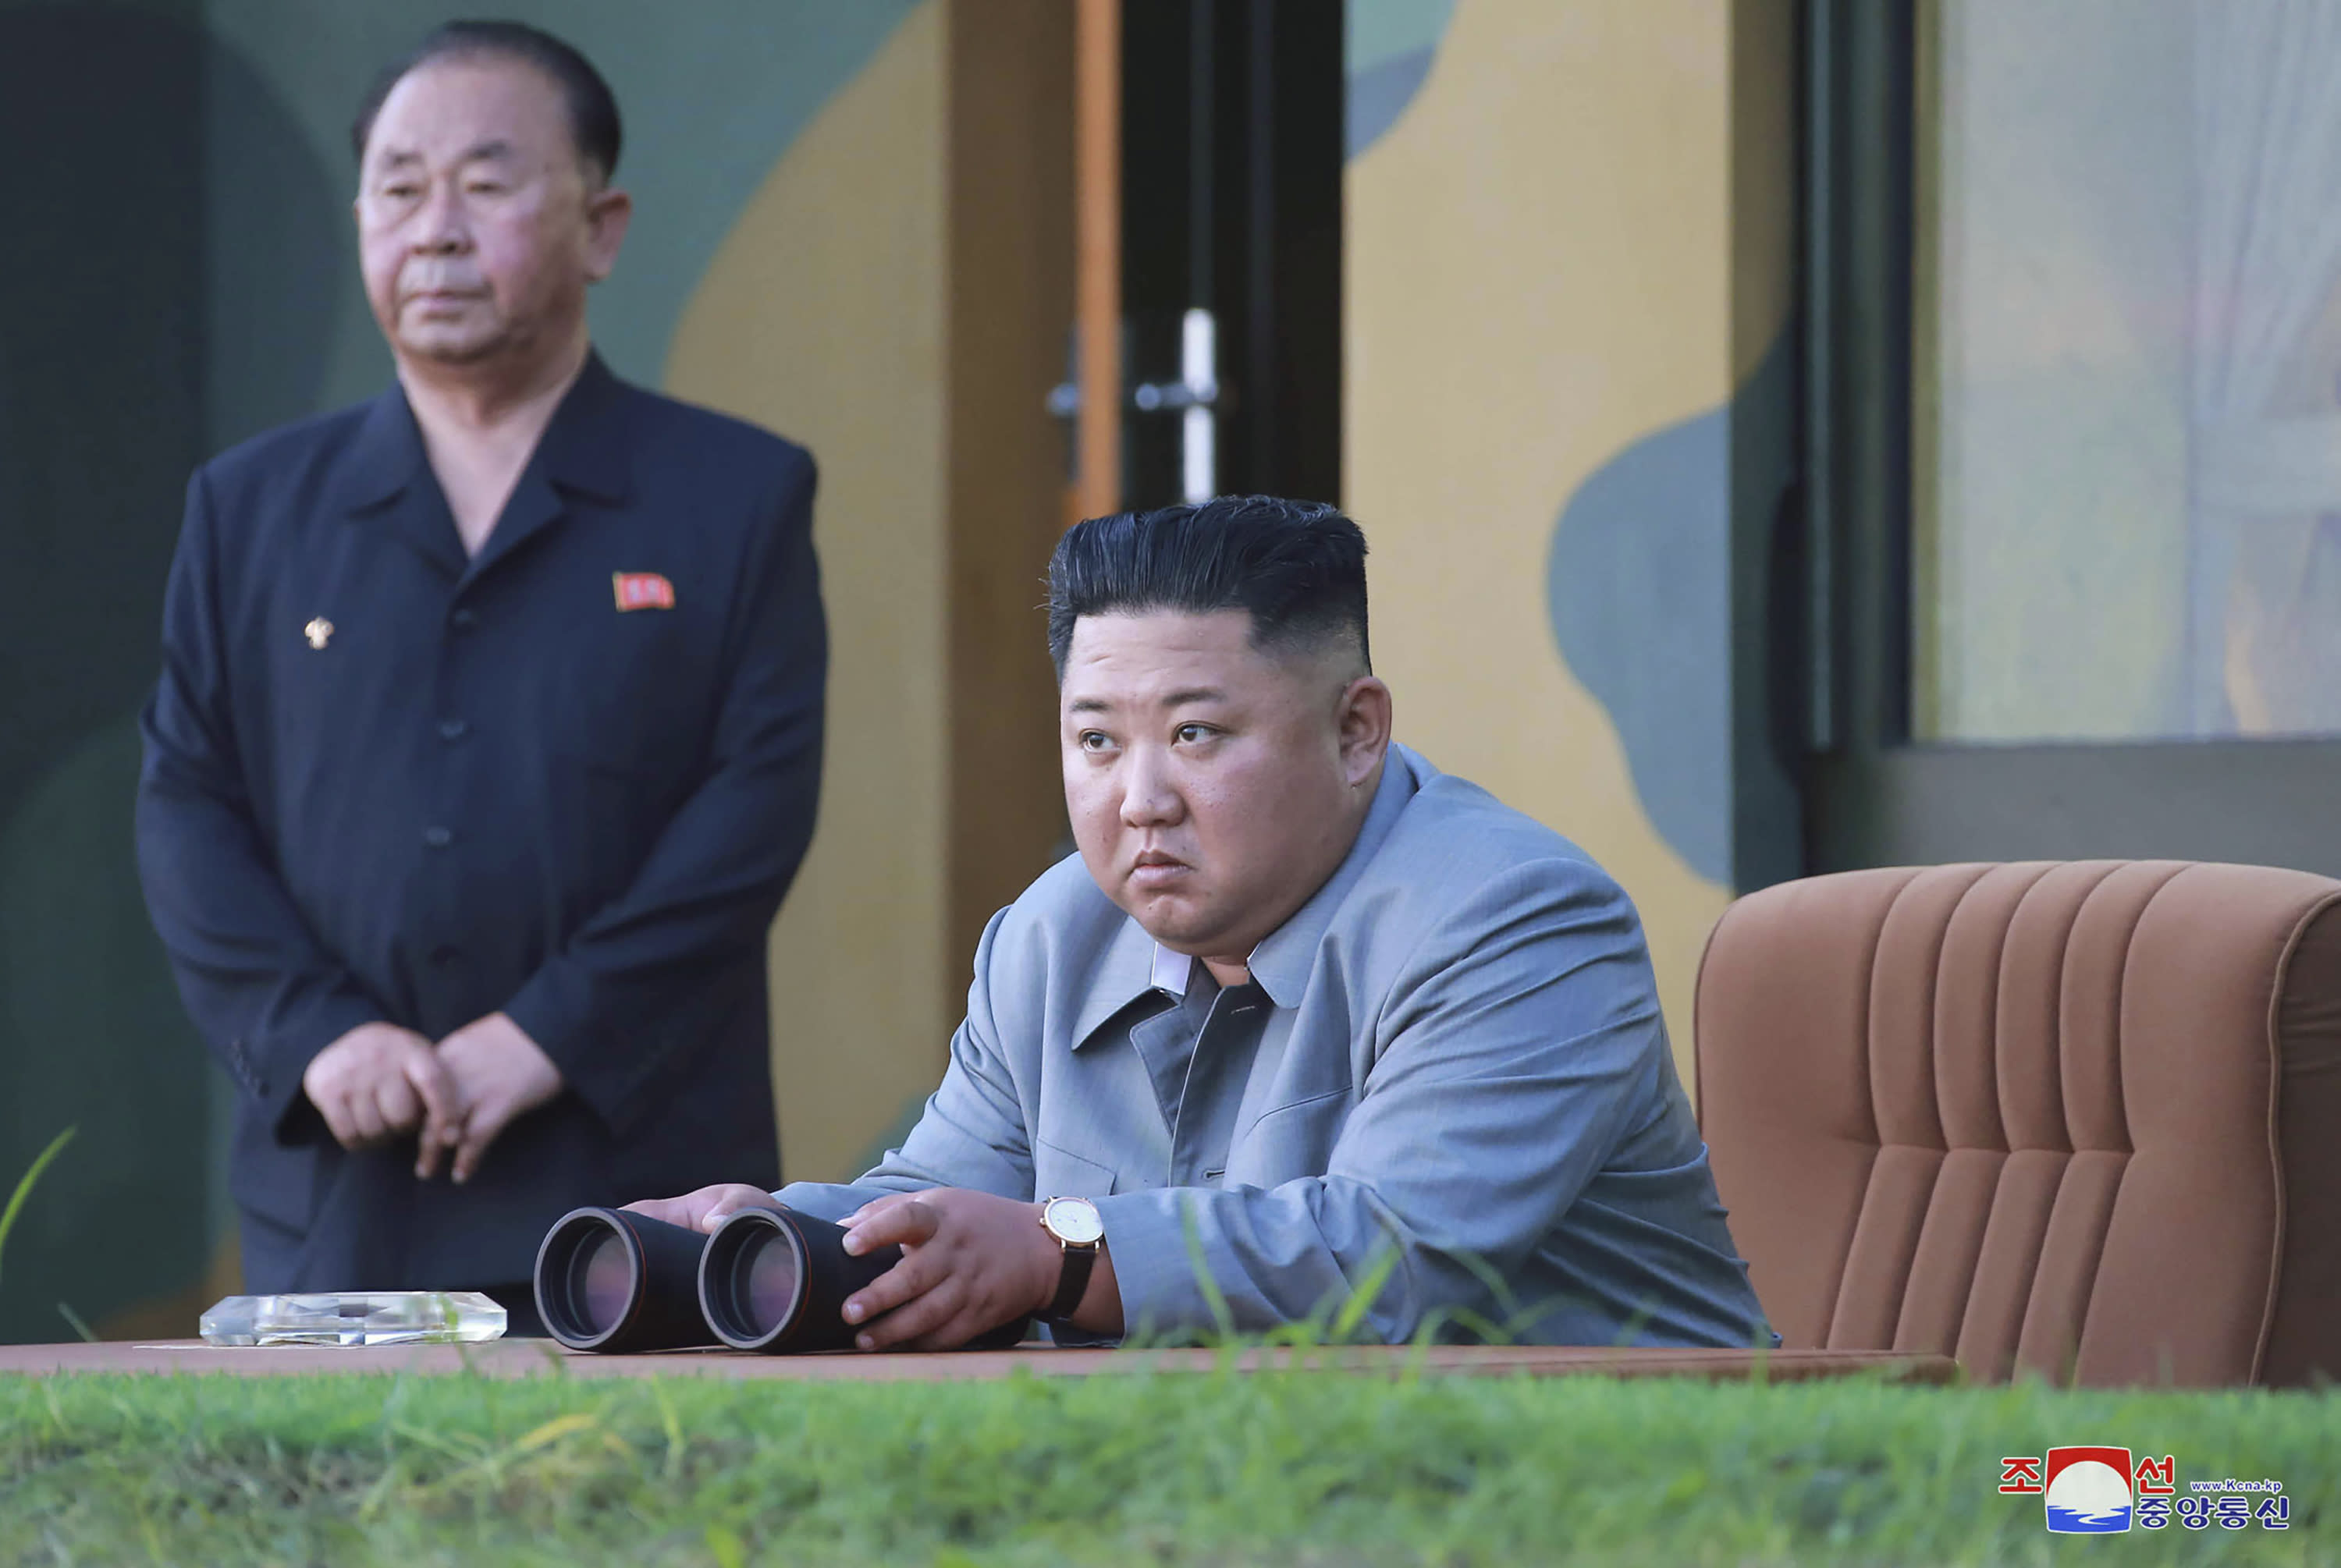 North Korea: Missile Test Was 'Solemn Warning' to South